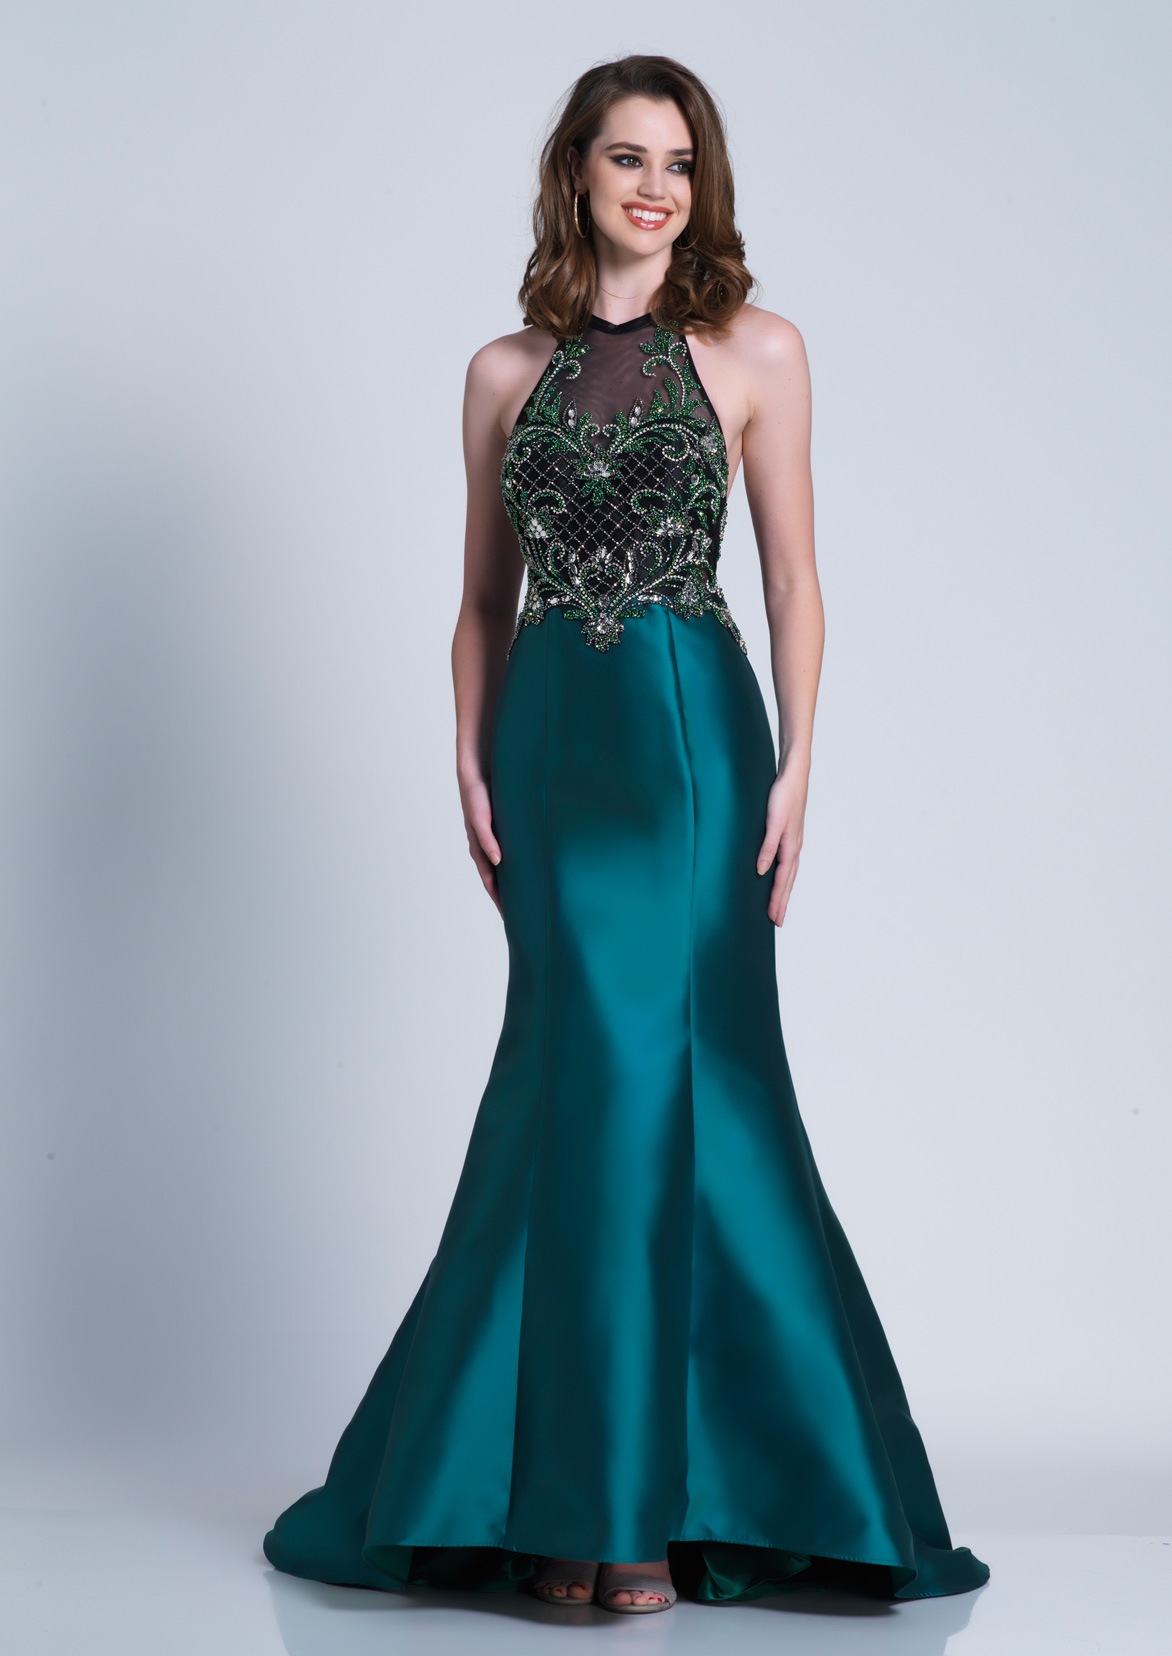 Awesome Alternative Prom Dresses Collection - All Wedding Dresses ...